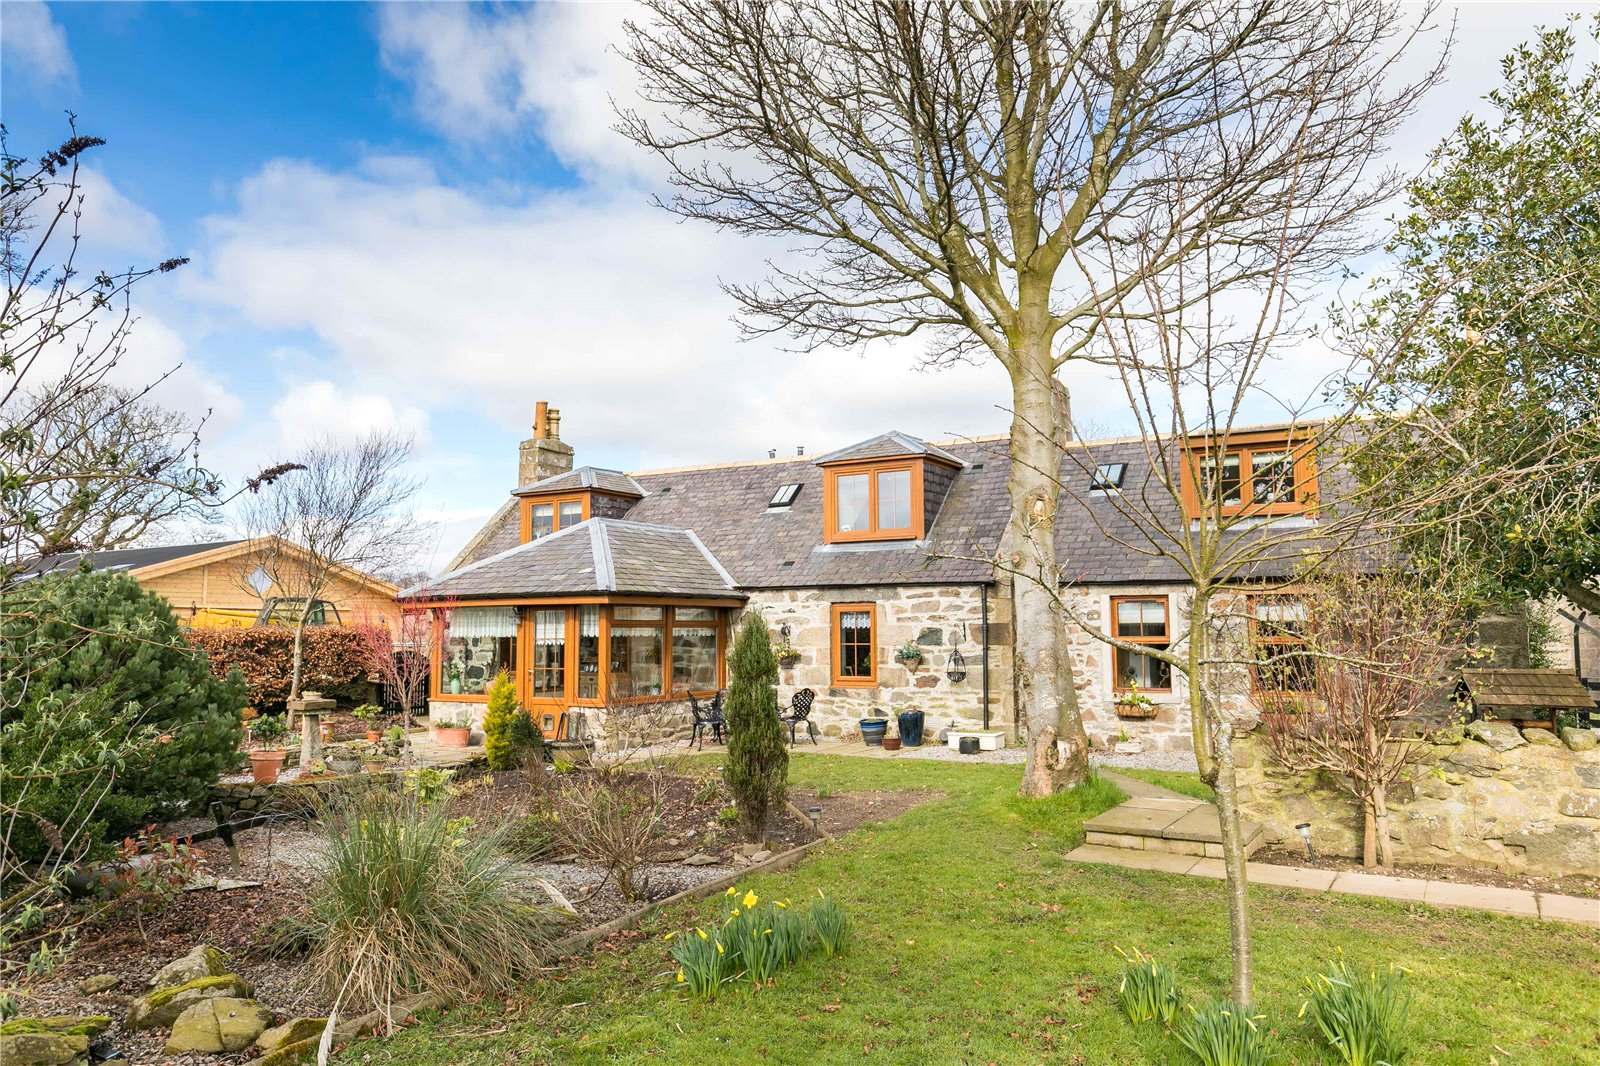 Aberdeenshire Property of the Week: Piketillum, Oldmeldrum